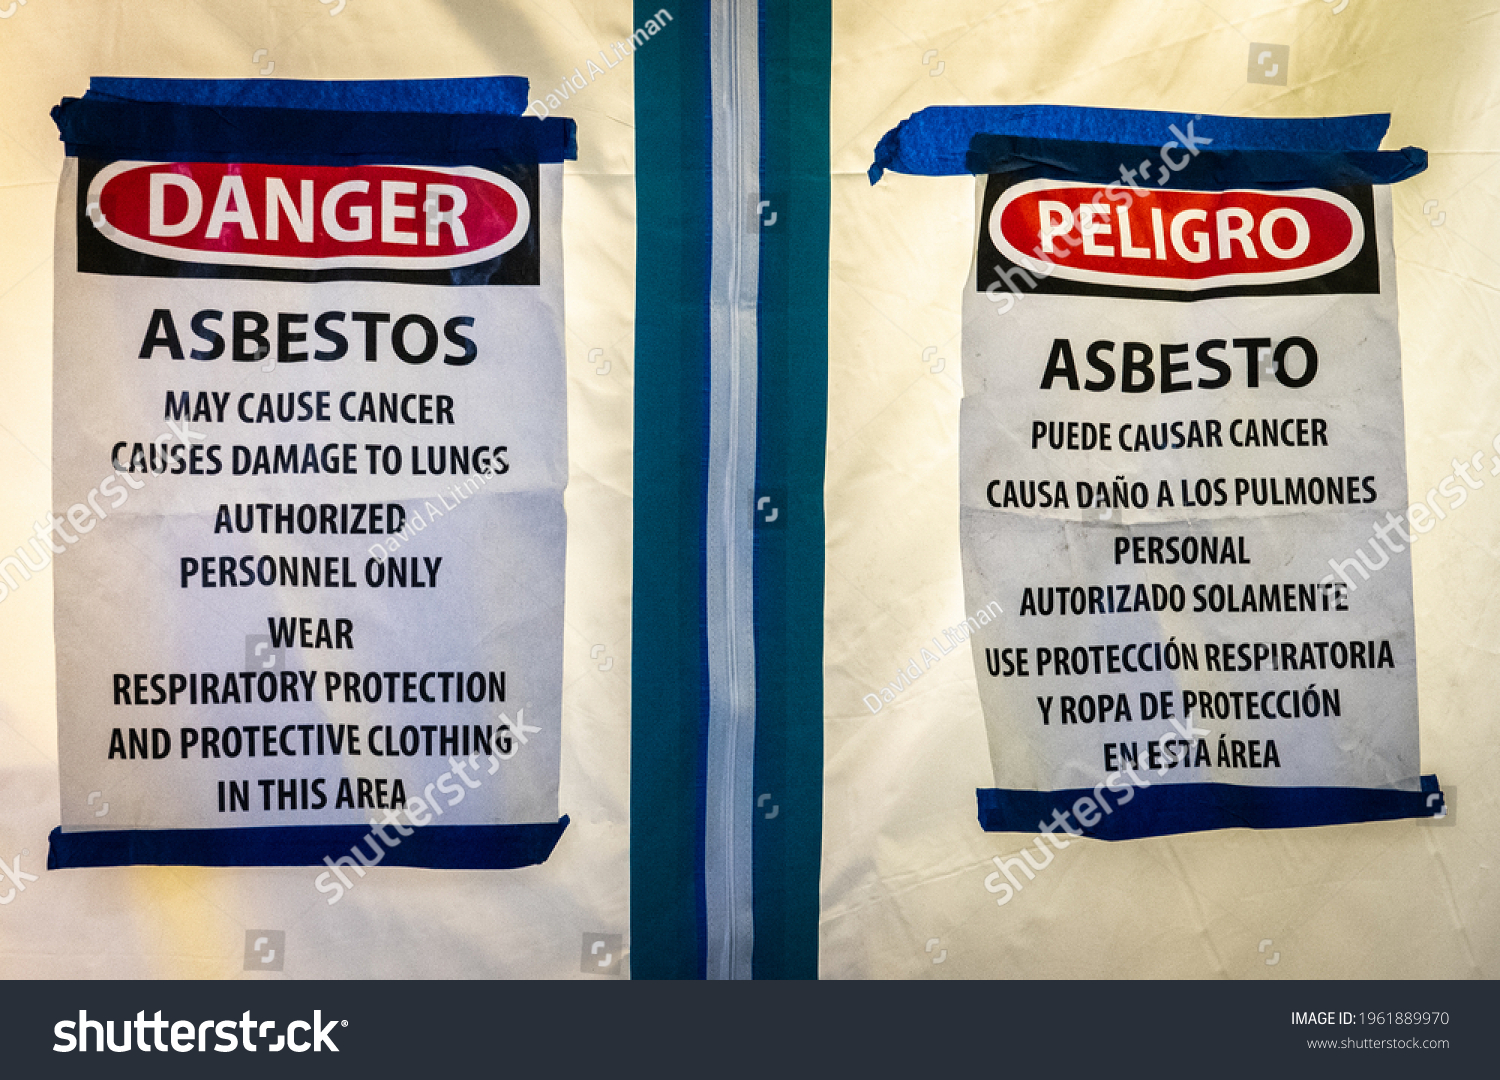 Bilingual signs in English and Spanish warns of the risk of lung cancer (and mesothelioma) from exposure to asbestos during remodeling of an old kitchen.